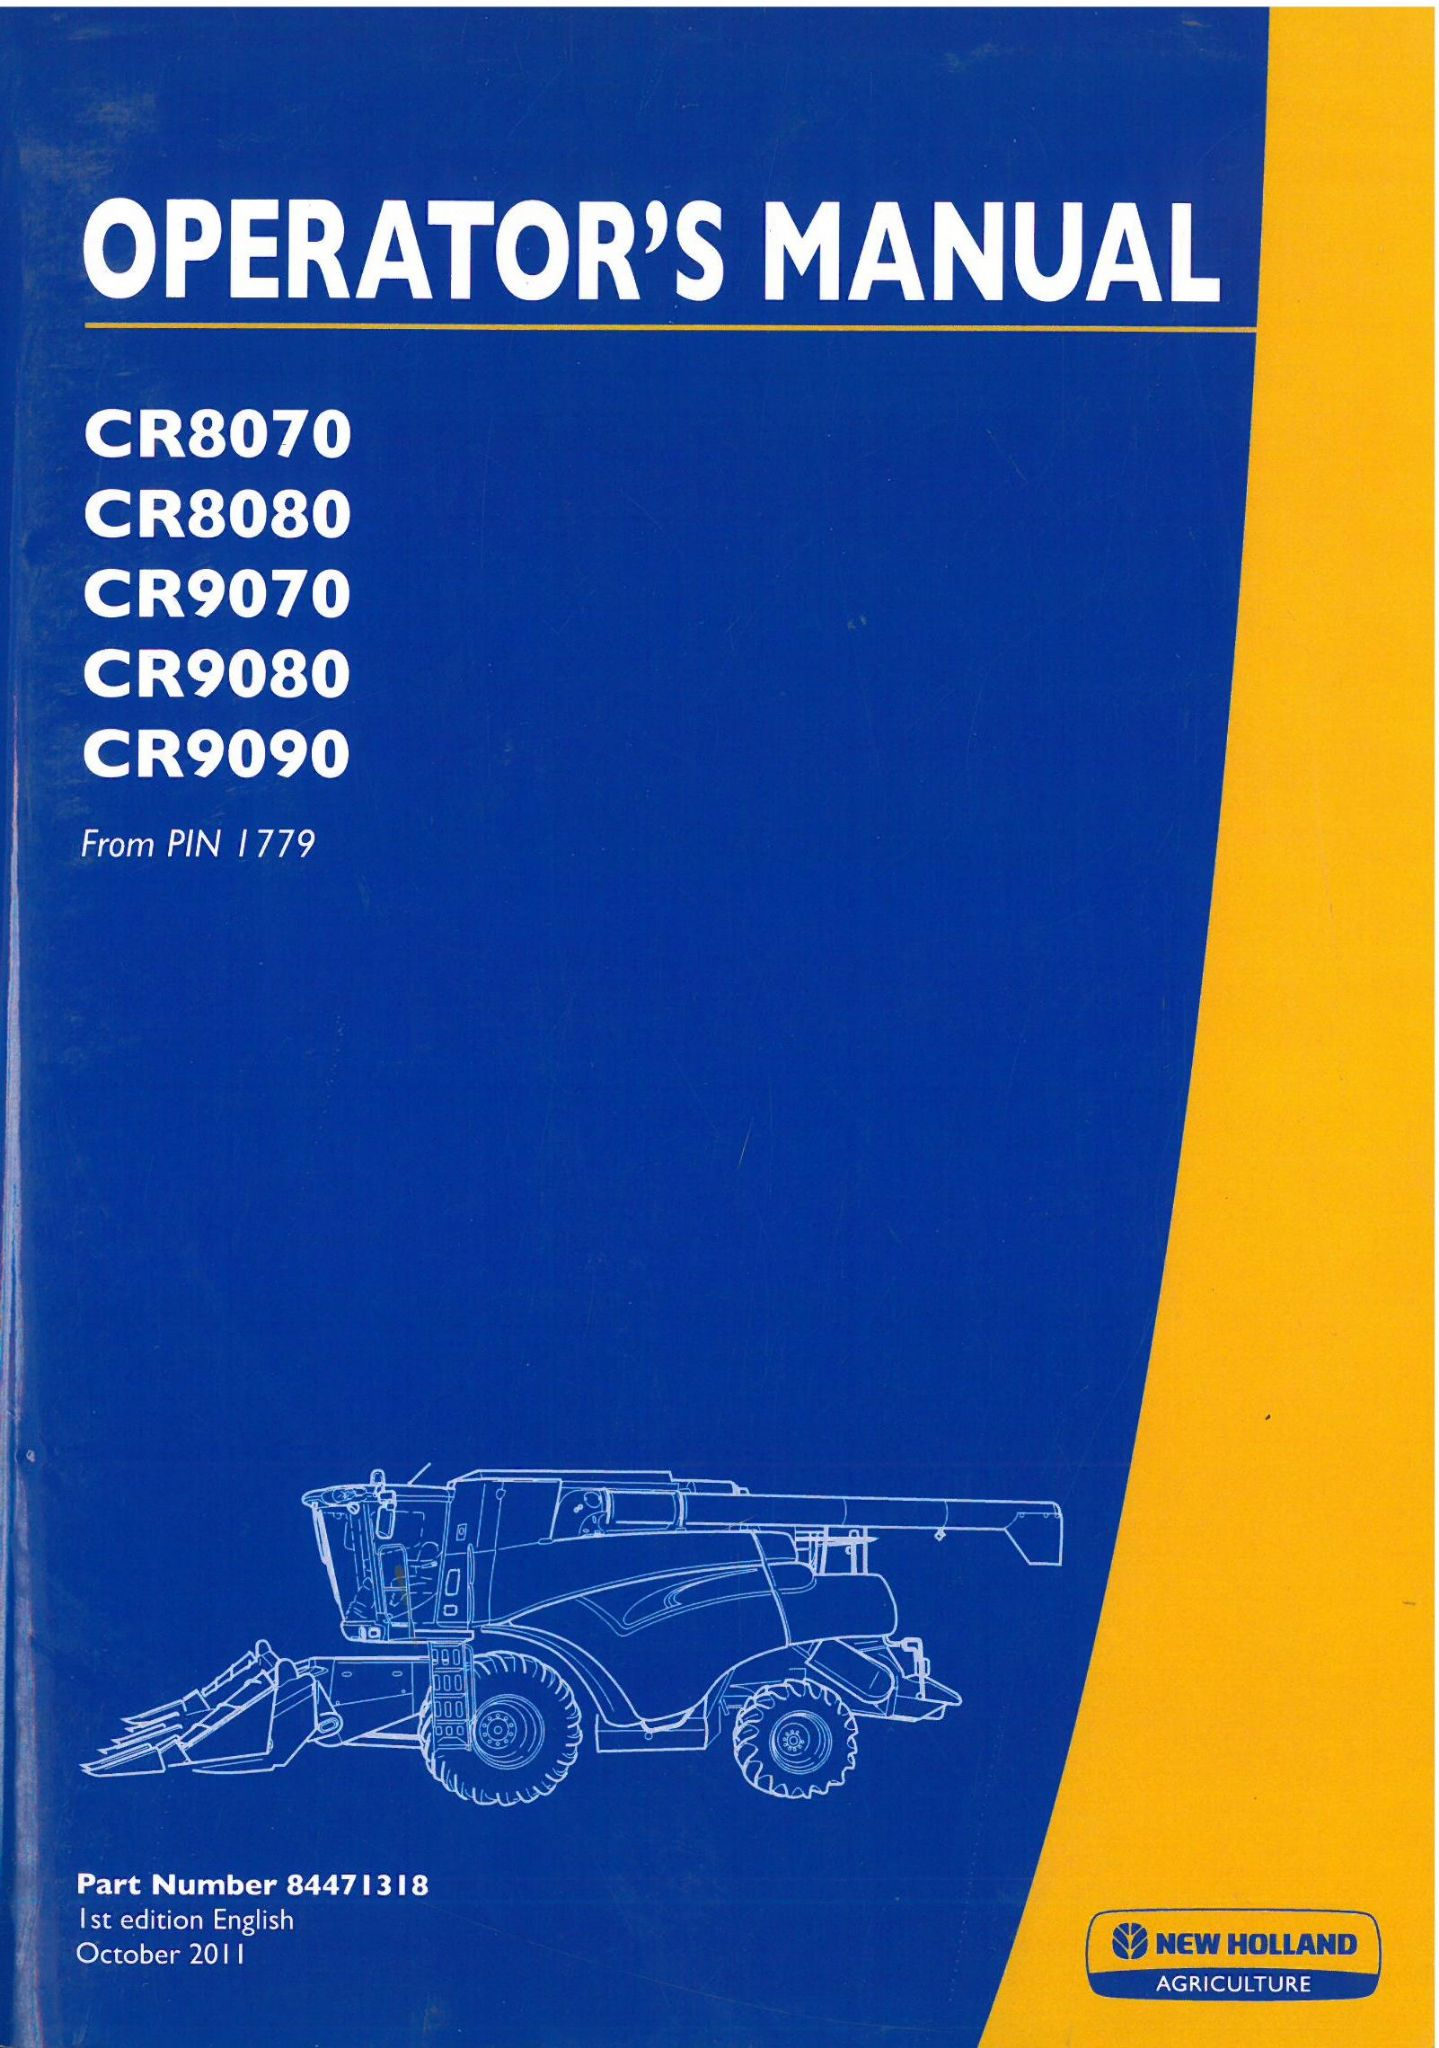 new holland combine cr8070 cr8080 cr9070 cr9080 cr9090 operators manual rh agrimanuals com holland grill user manual Instruction Manual